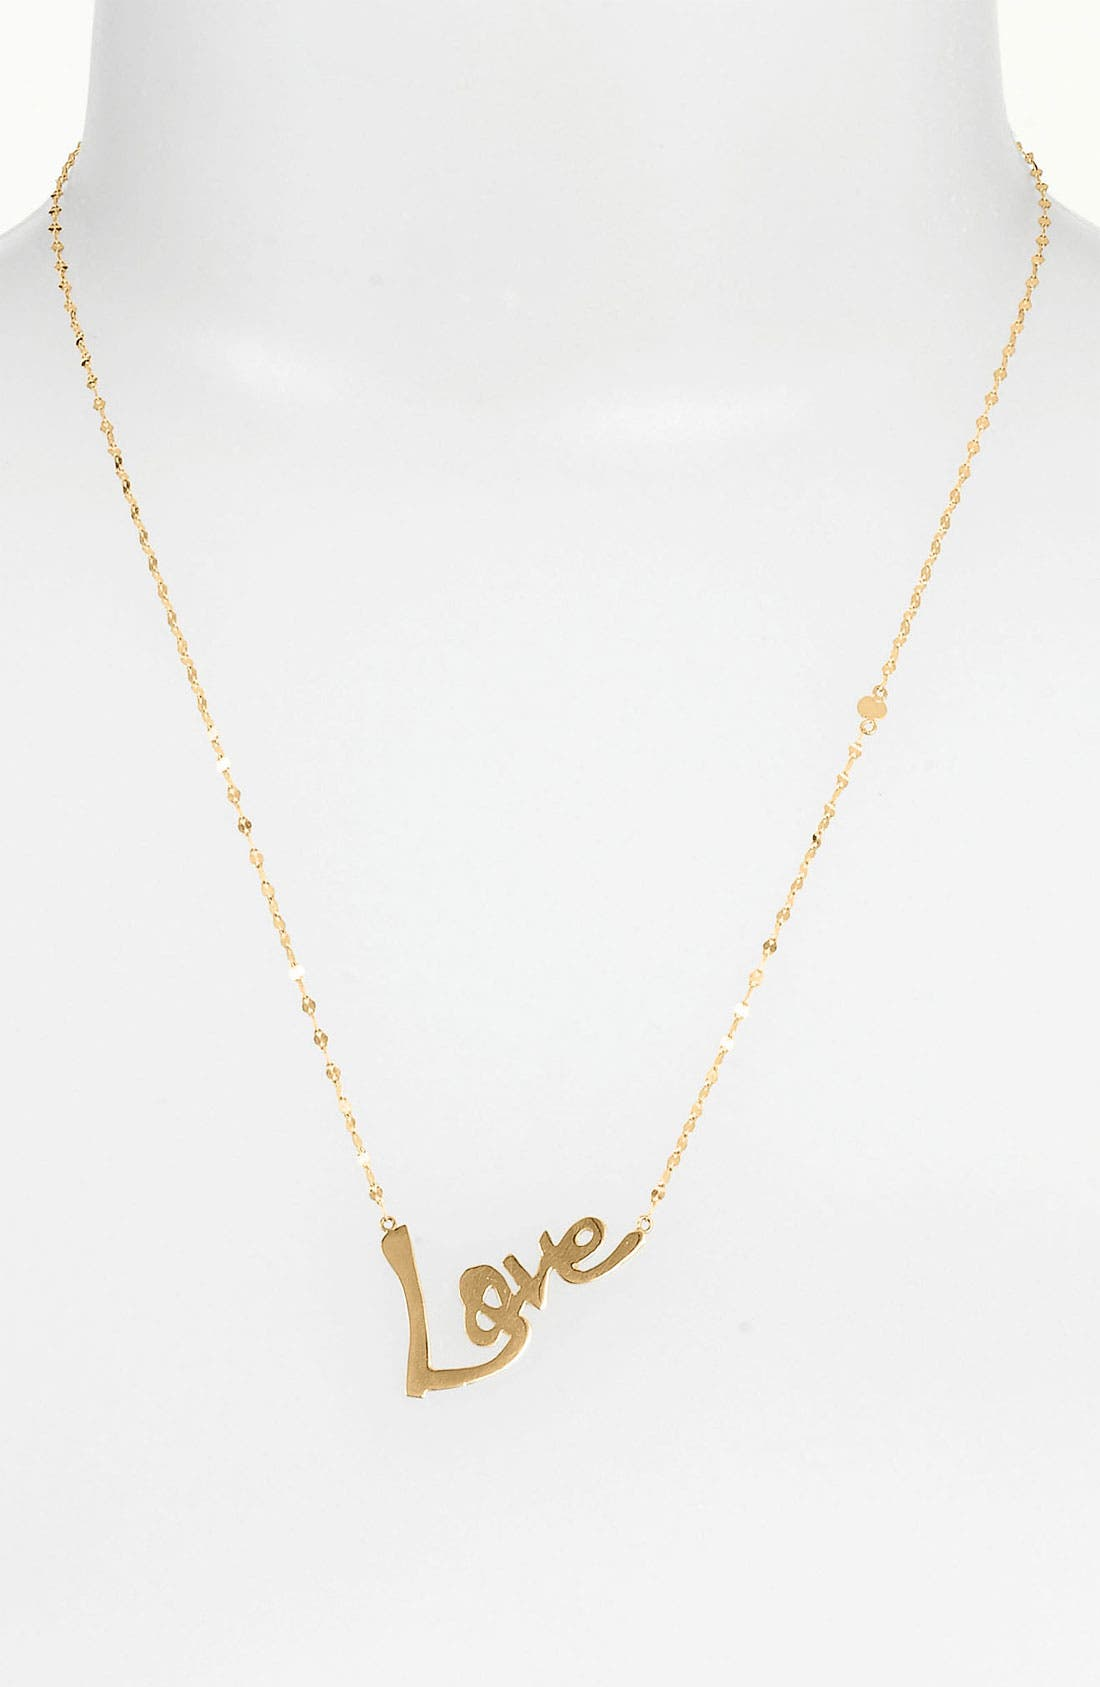 Main Image - Lana Jewelry 'Love' Charm Necklace